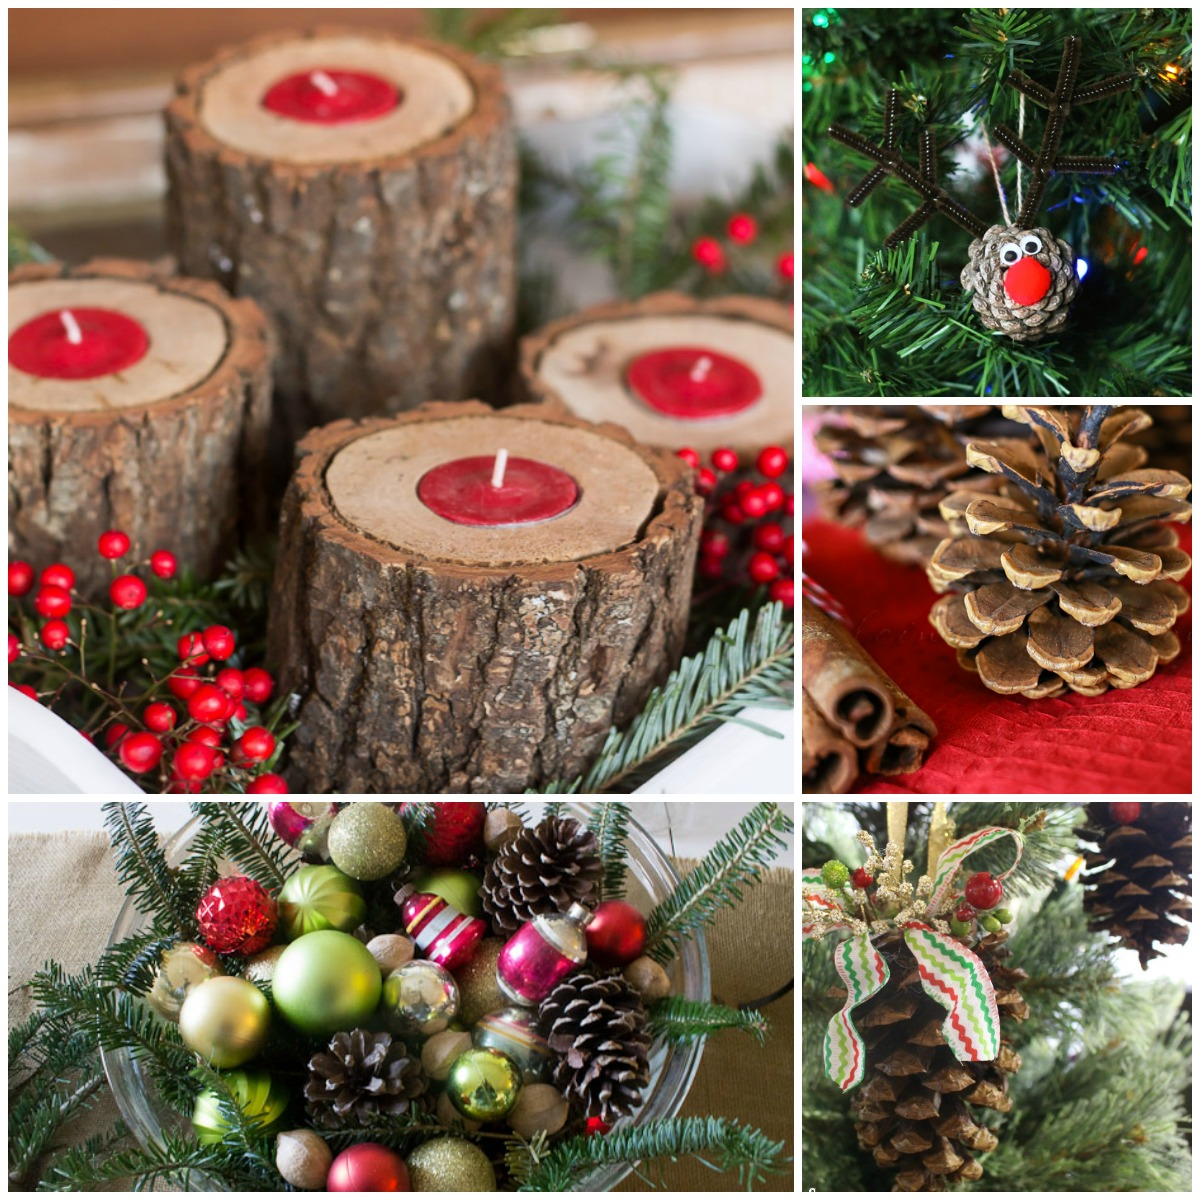 Holiday Decor Ideas Christmas: 9 DIY Home-Made Christmas Ornaments To Decorate Your Tree